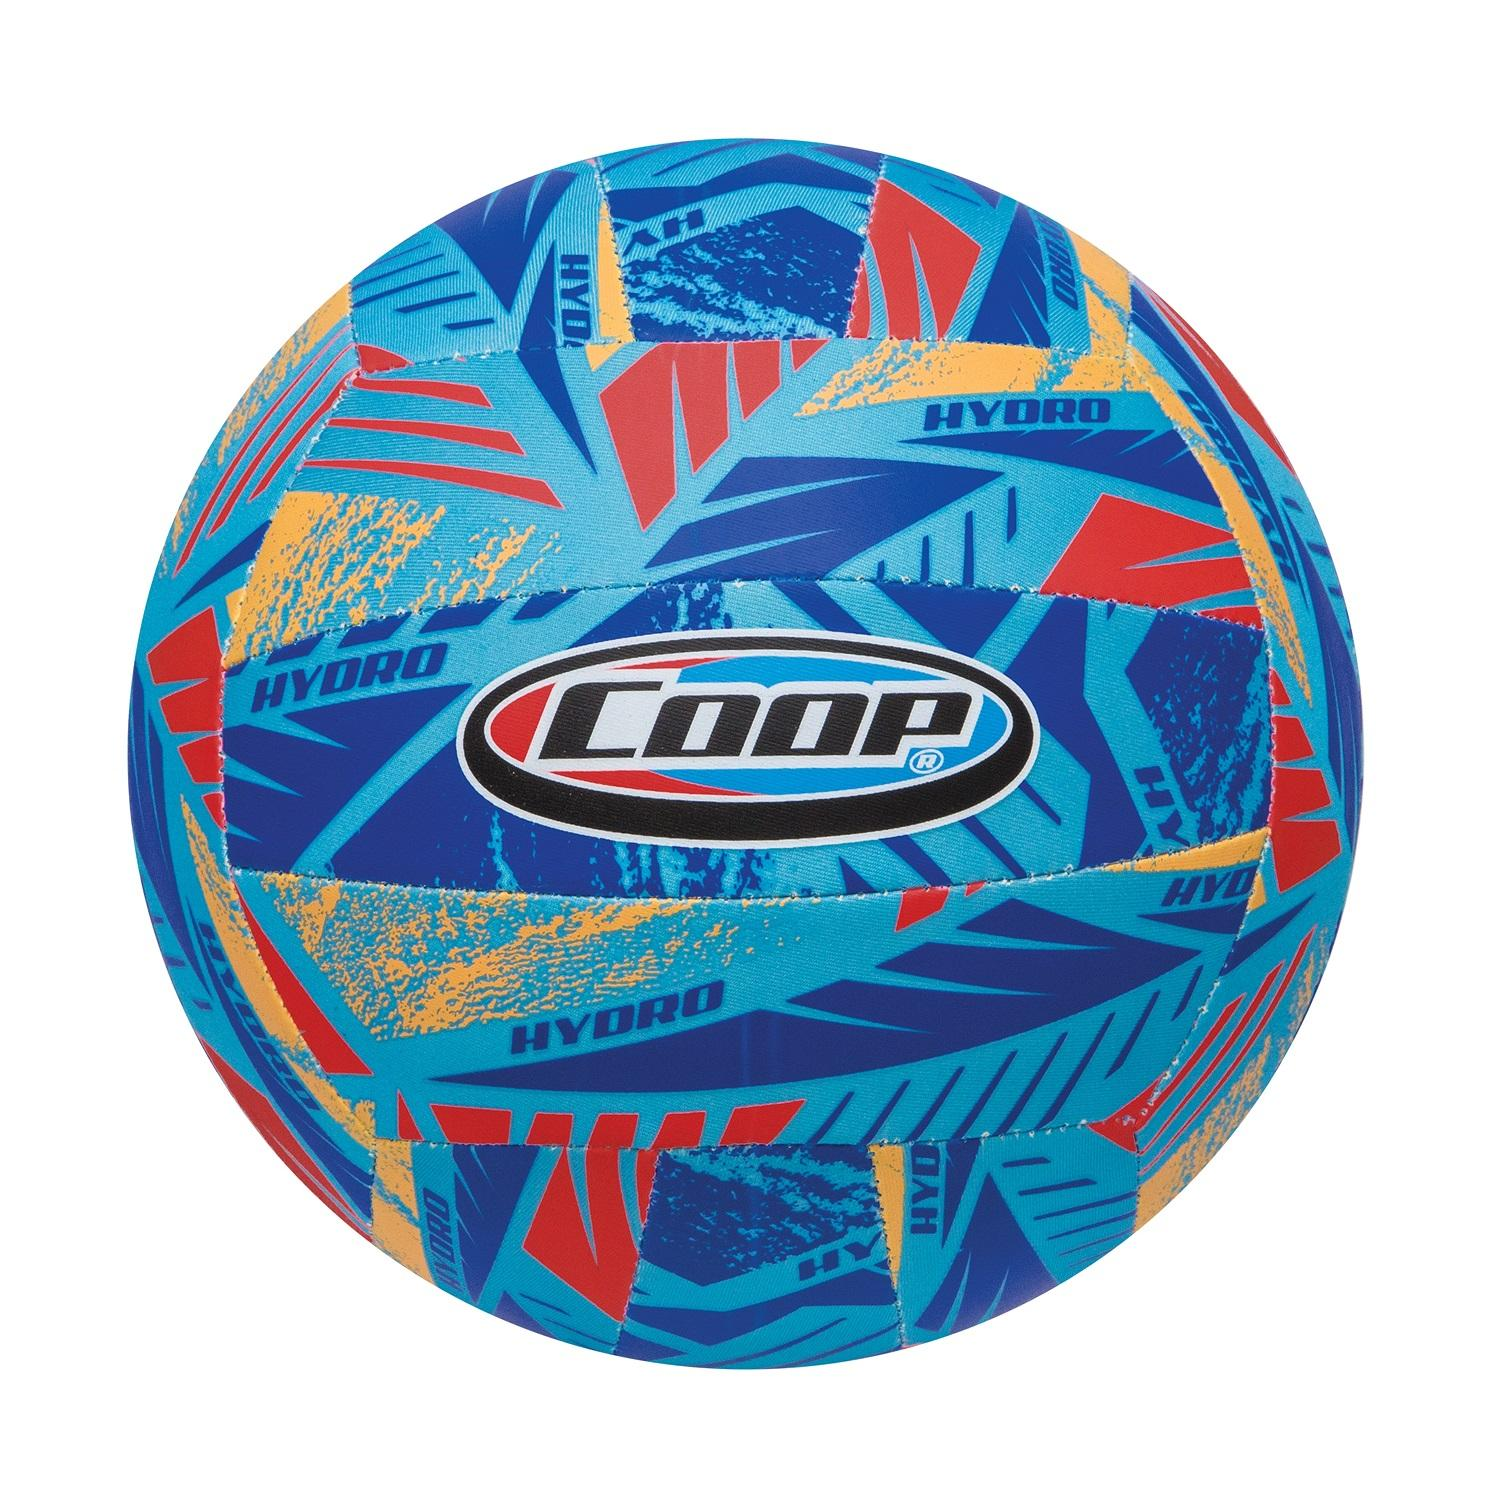 """8"""" Blue, Orange and Red High Performance Hydro Volleyball Swimming Pool Toy by Swim Way"""